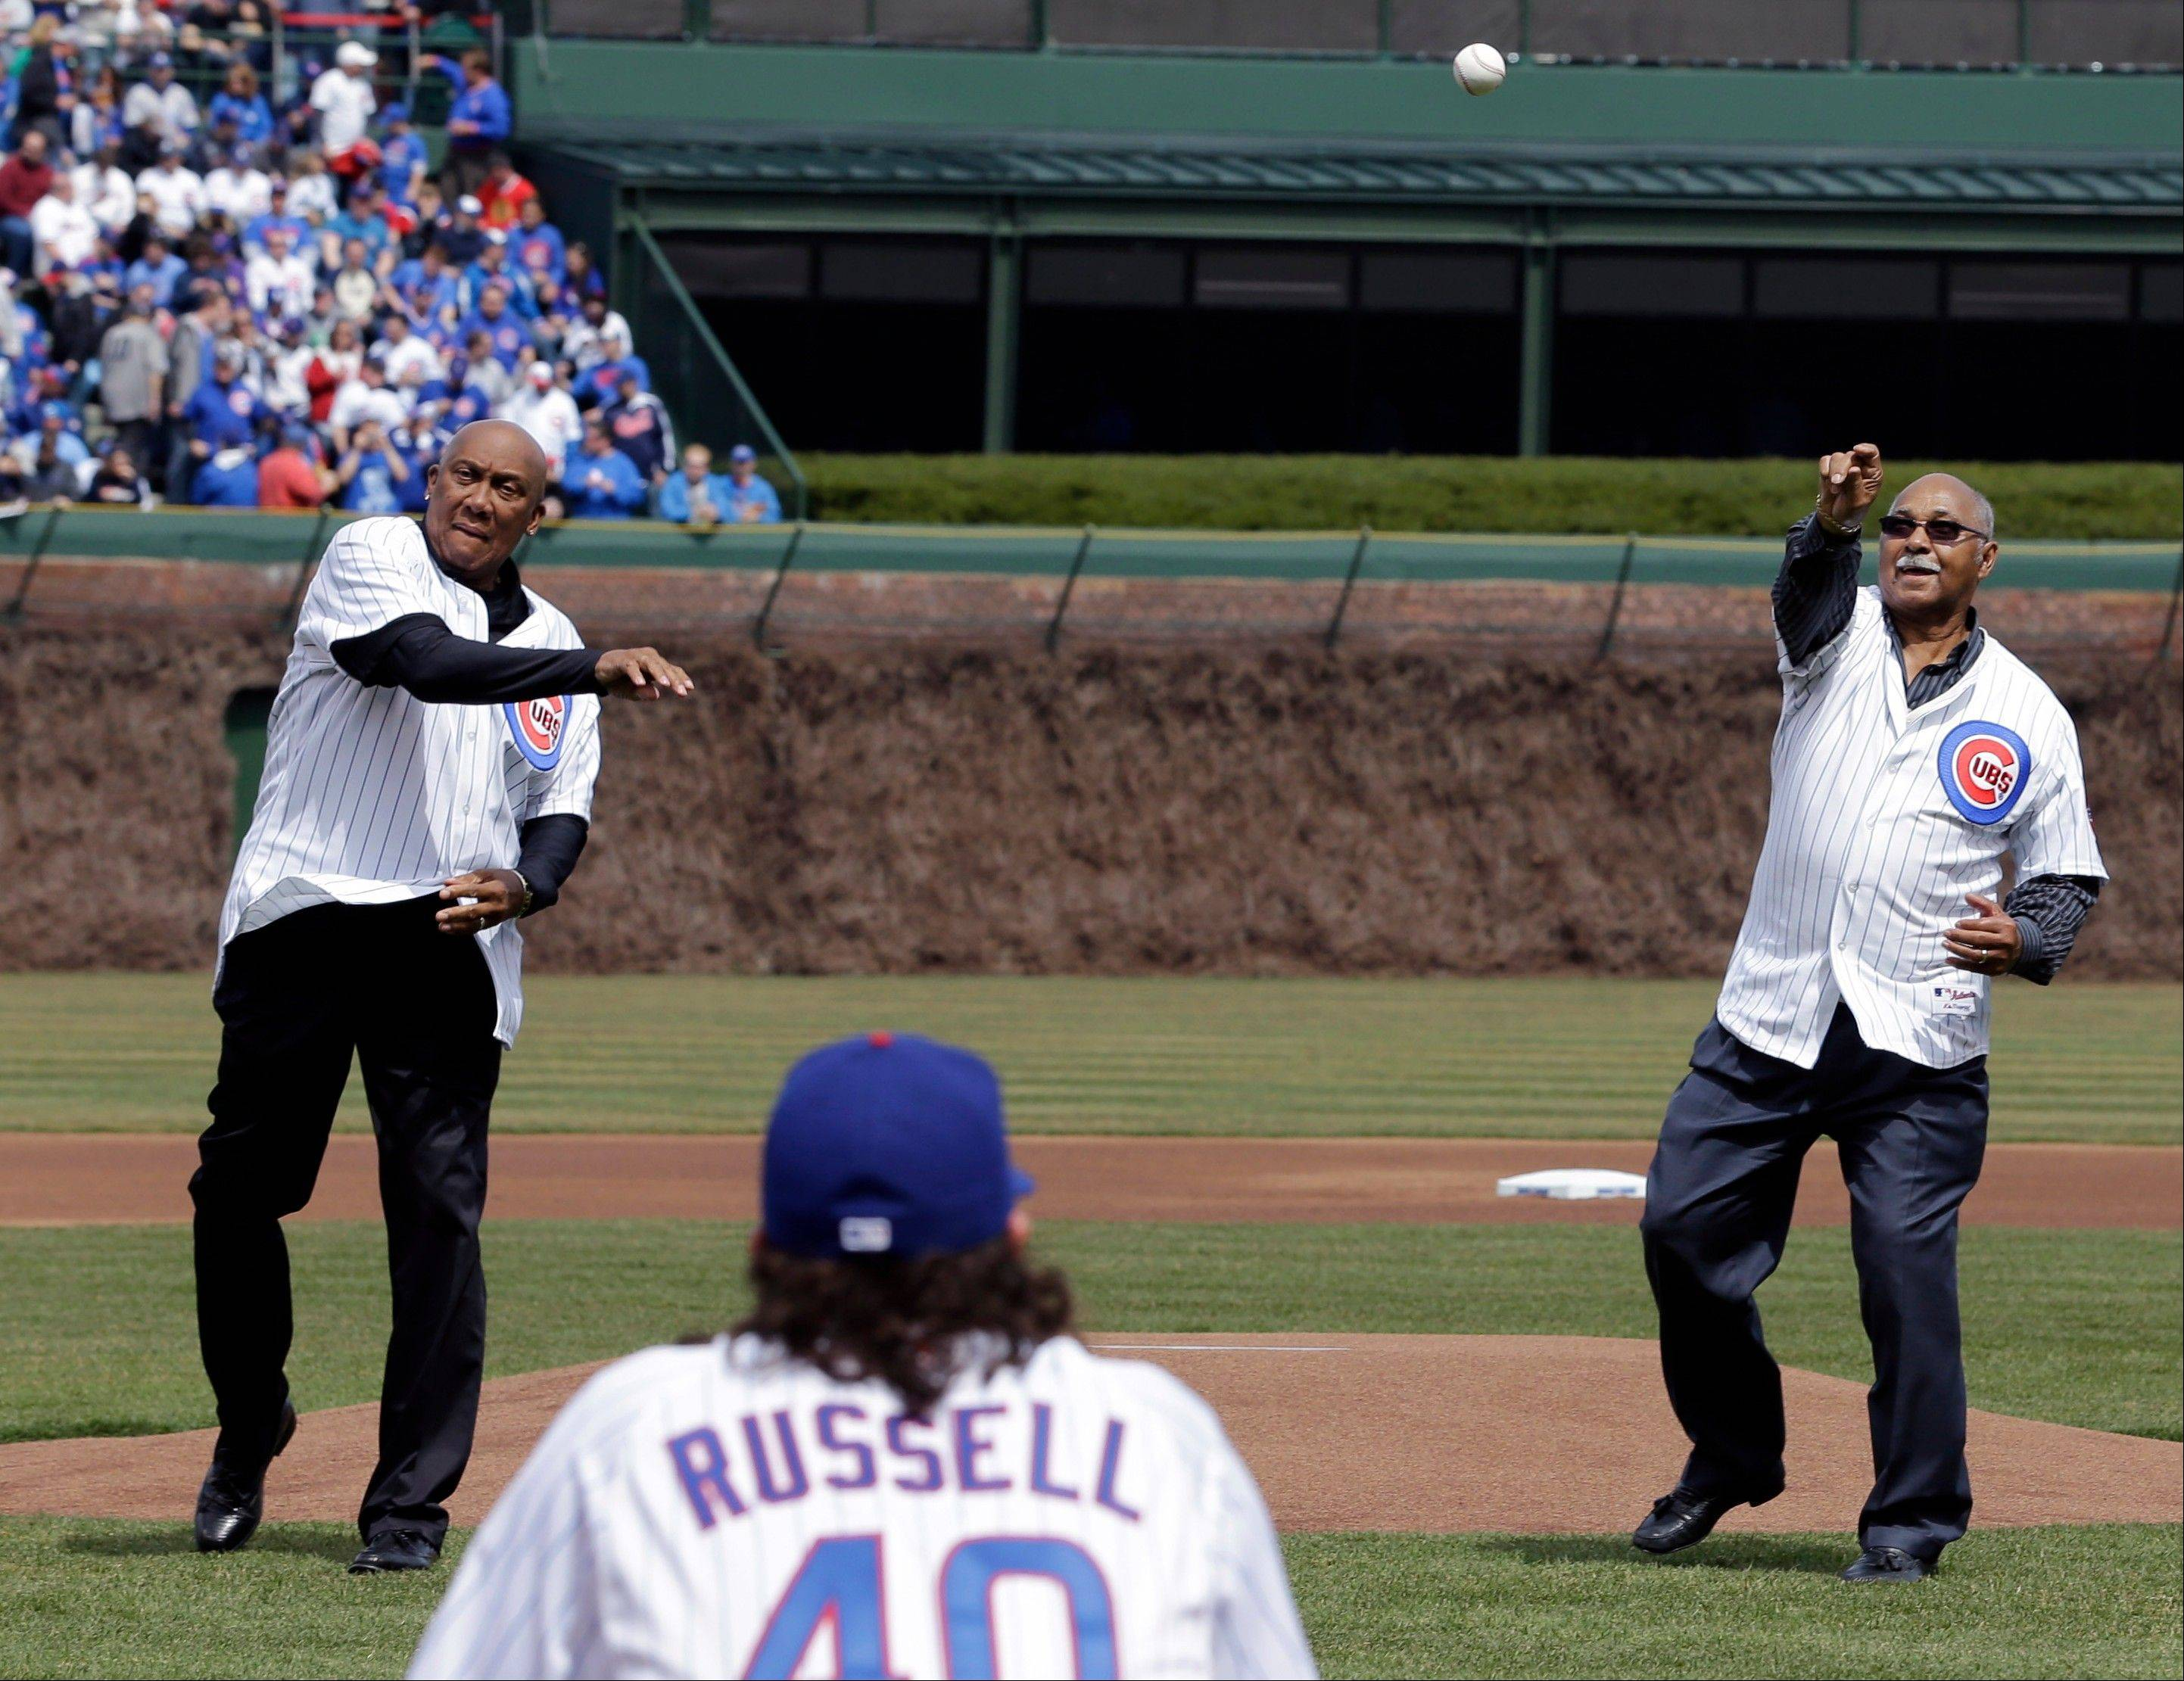 Former baseball players Ferguson Jenkins, left, and Billy Williams throw out the opening pitch for the Chicago Cubs' home opener against the Milwaukee Brewers in Chicago, Monday, April 8, 2013.